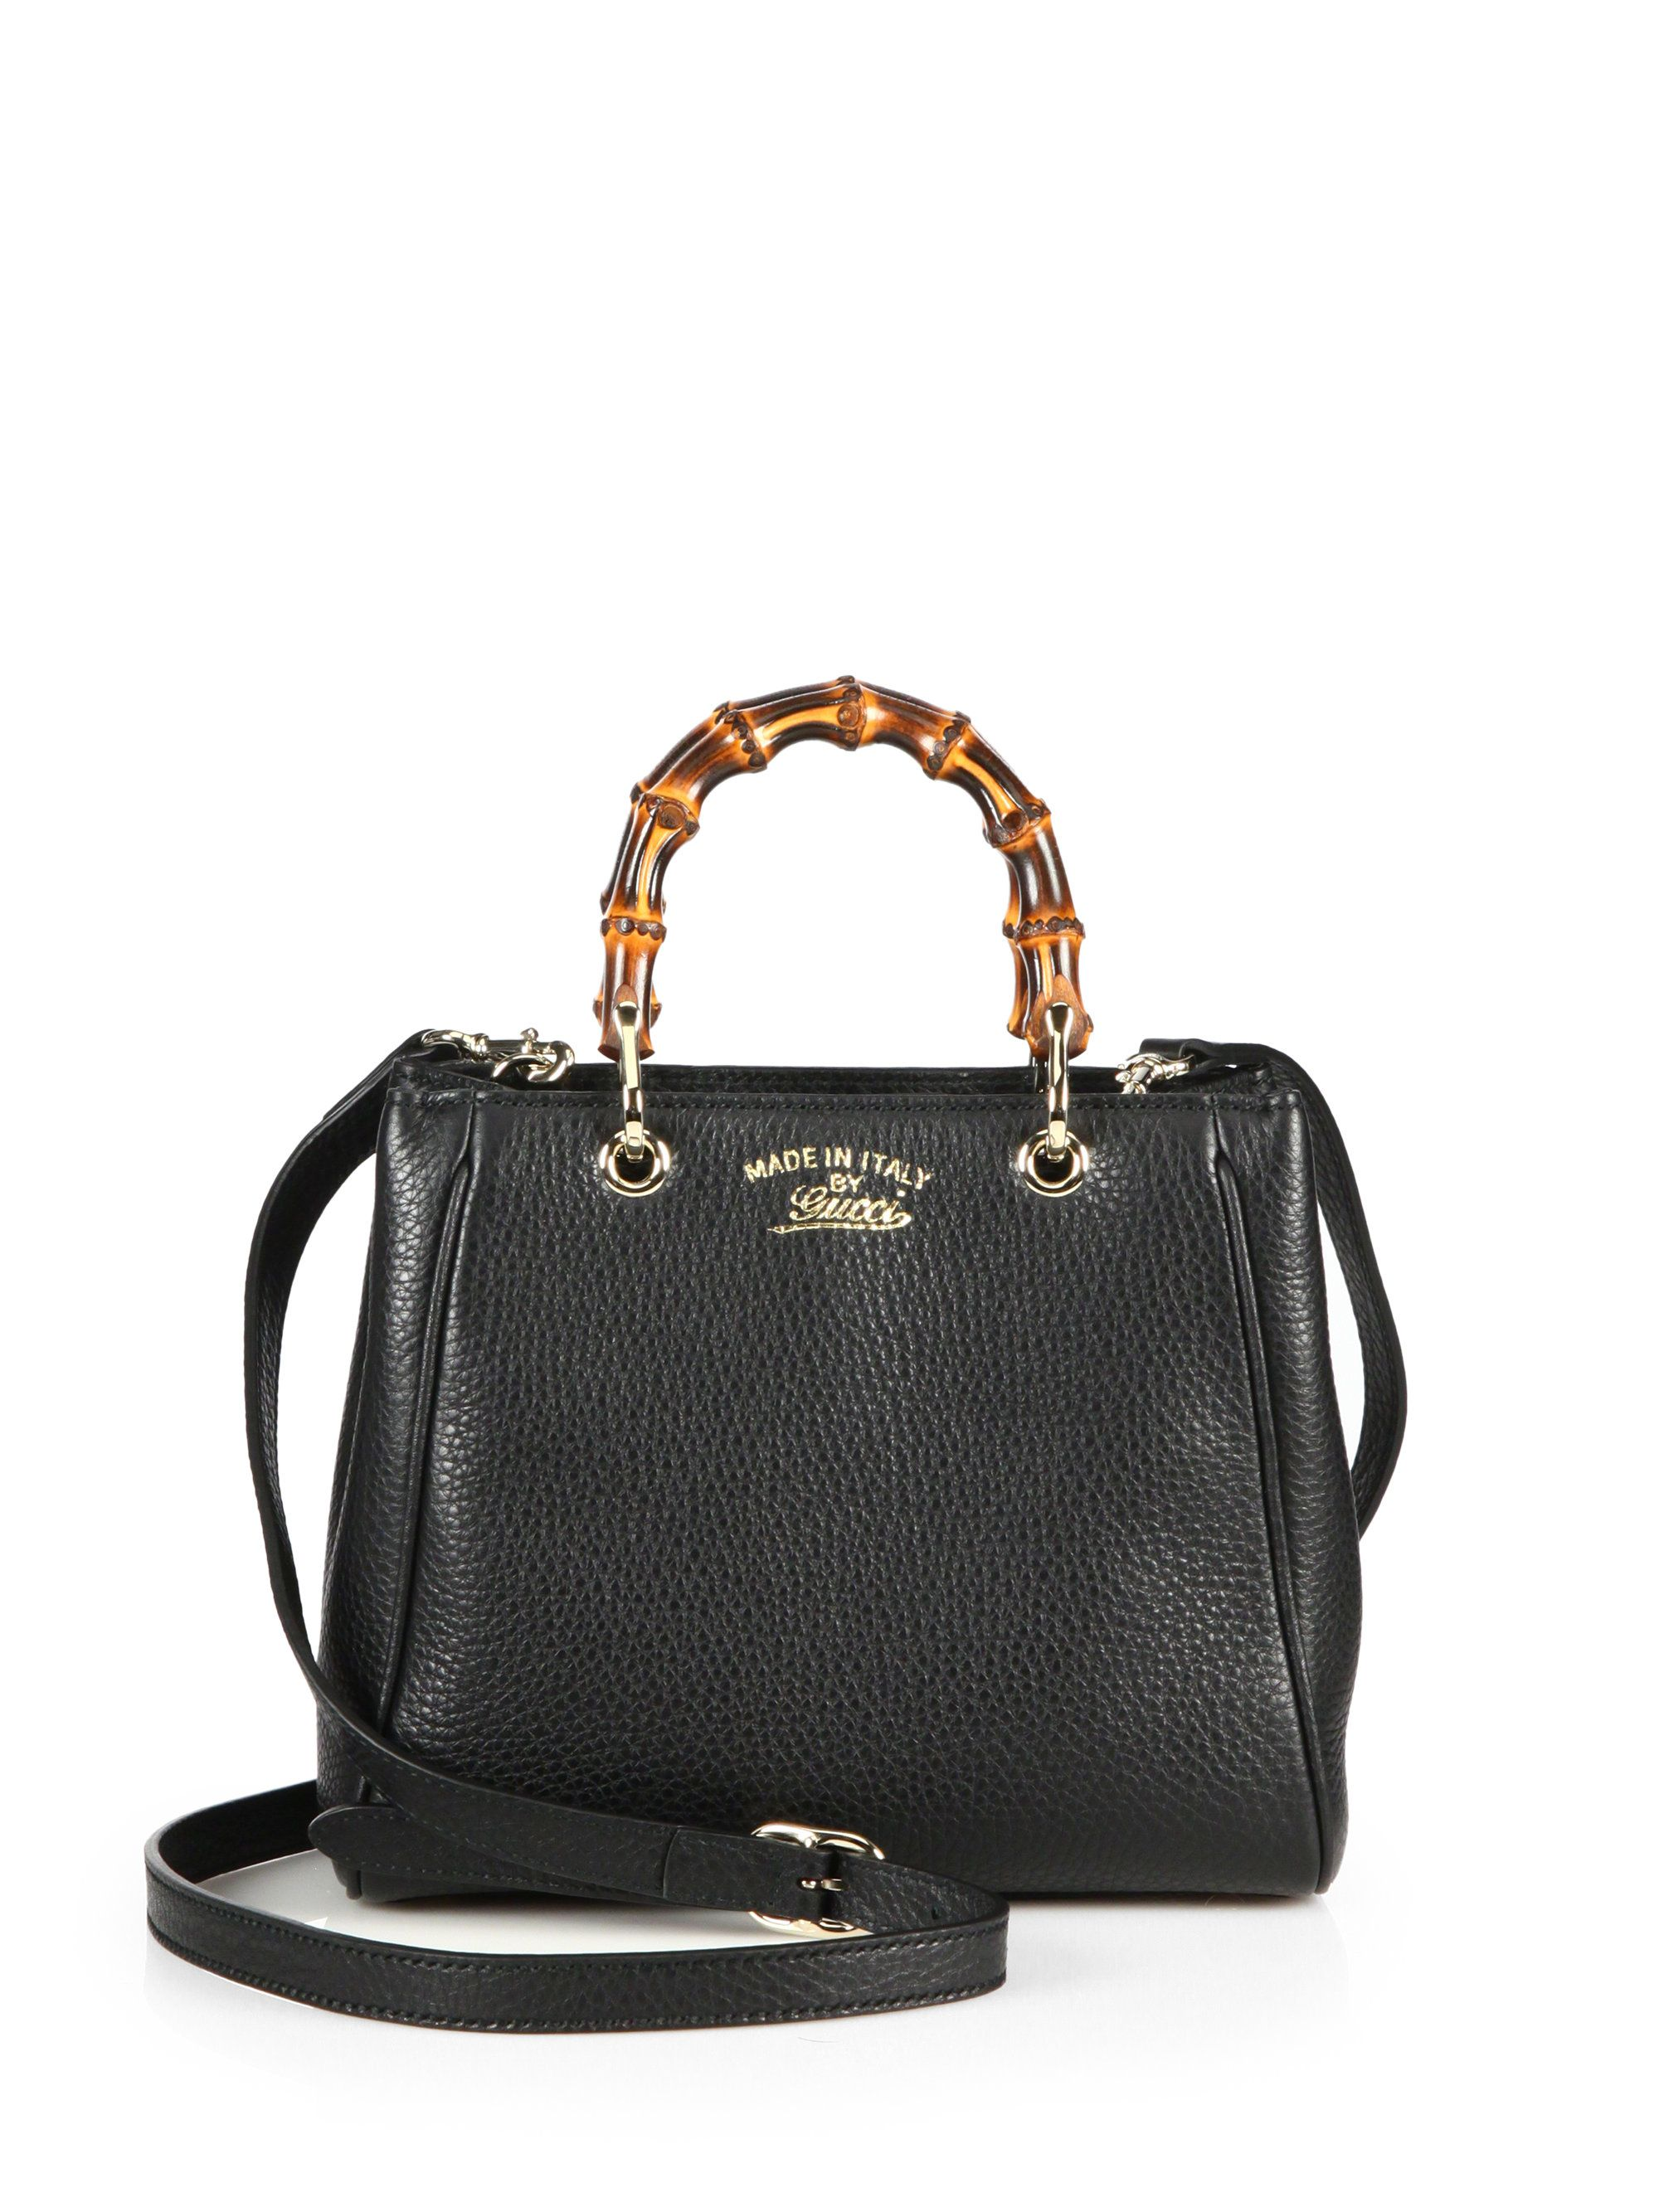 df308ec9f9d871 Gucci Bamboo Shopper Mini Leather Top Handle Bag in Black (NERO-BLACK) |  Lyst